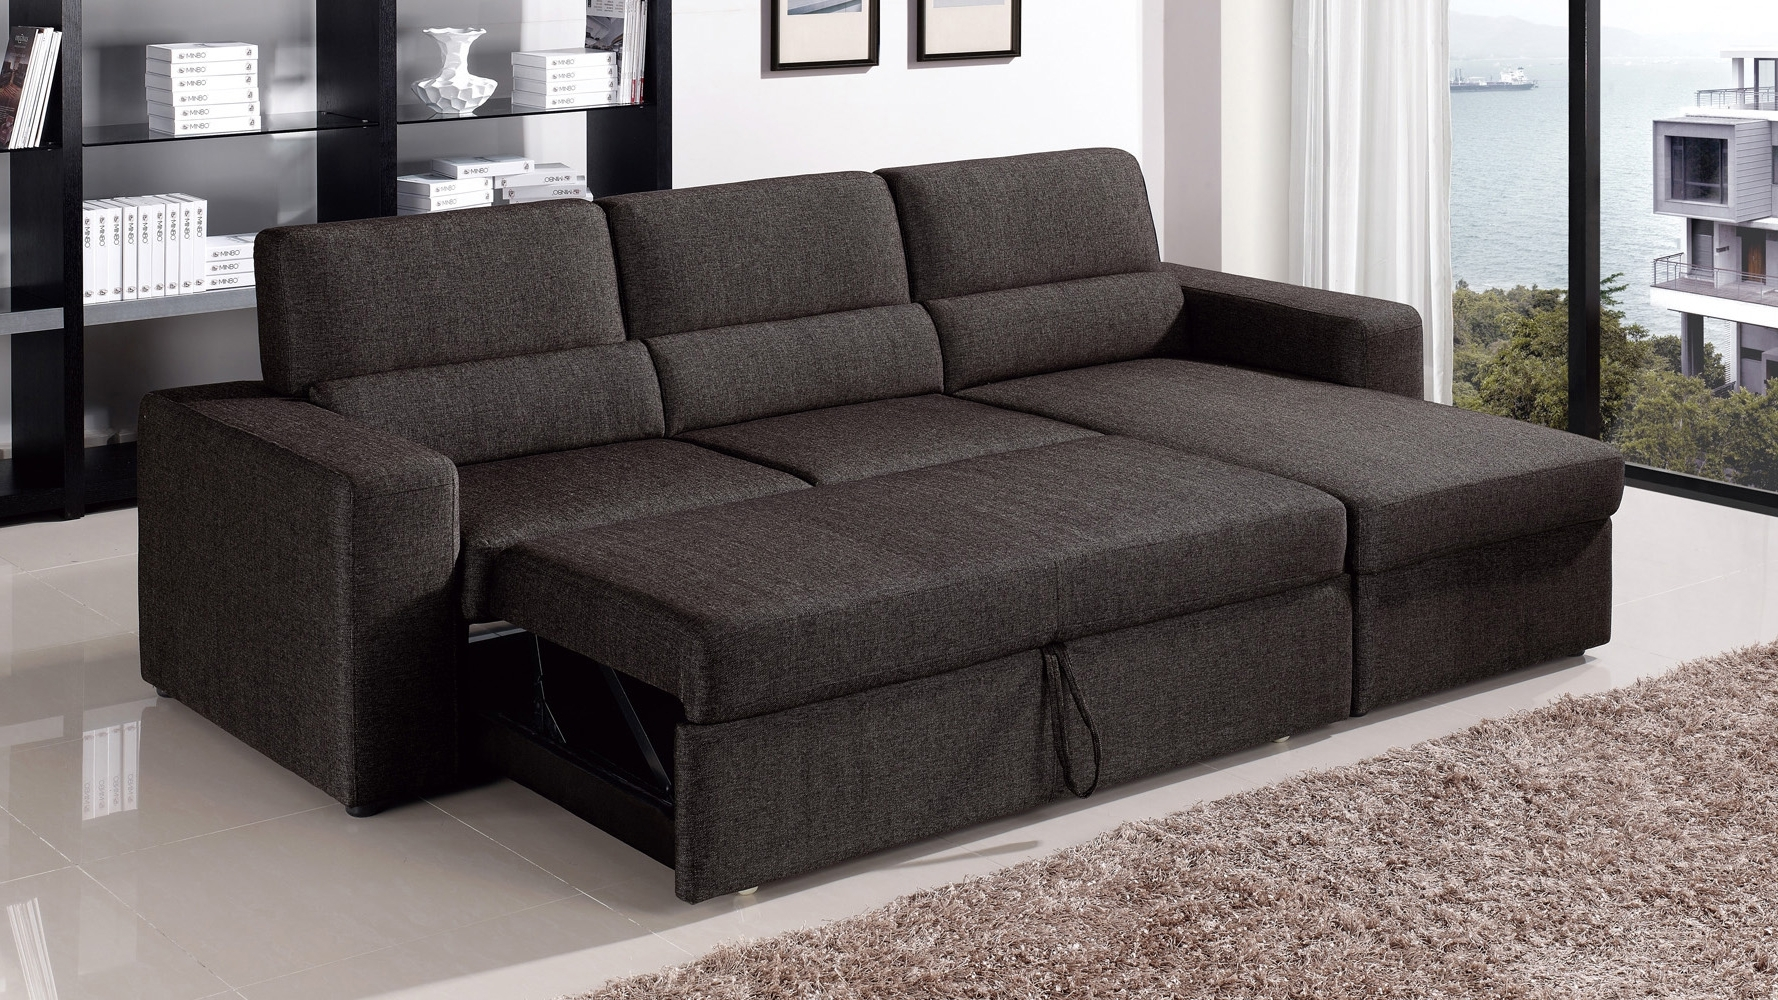 Best And Newest Sleeper Sofa Chaises Regarding Black/brown Clubber Sleeper Sectional Sofa (View 6 of 15)